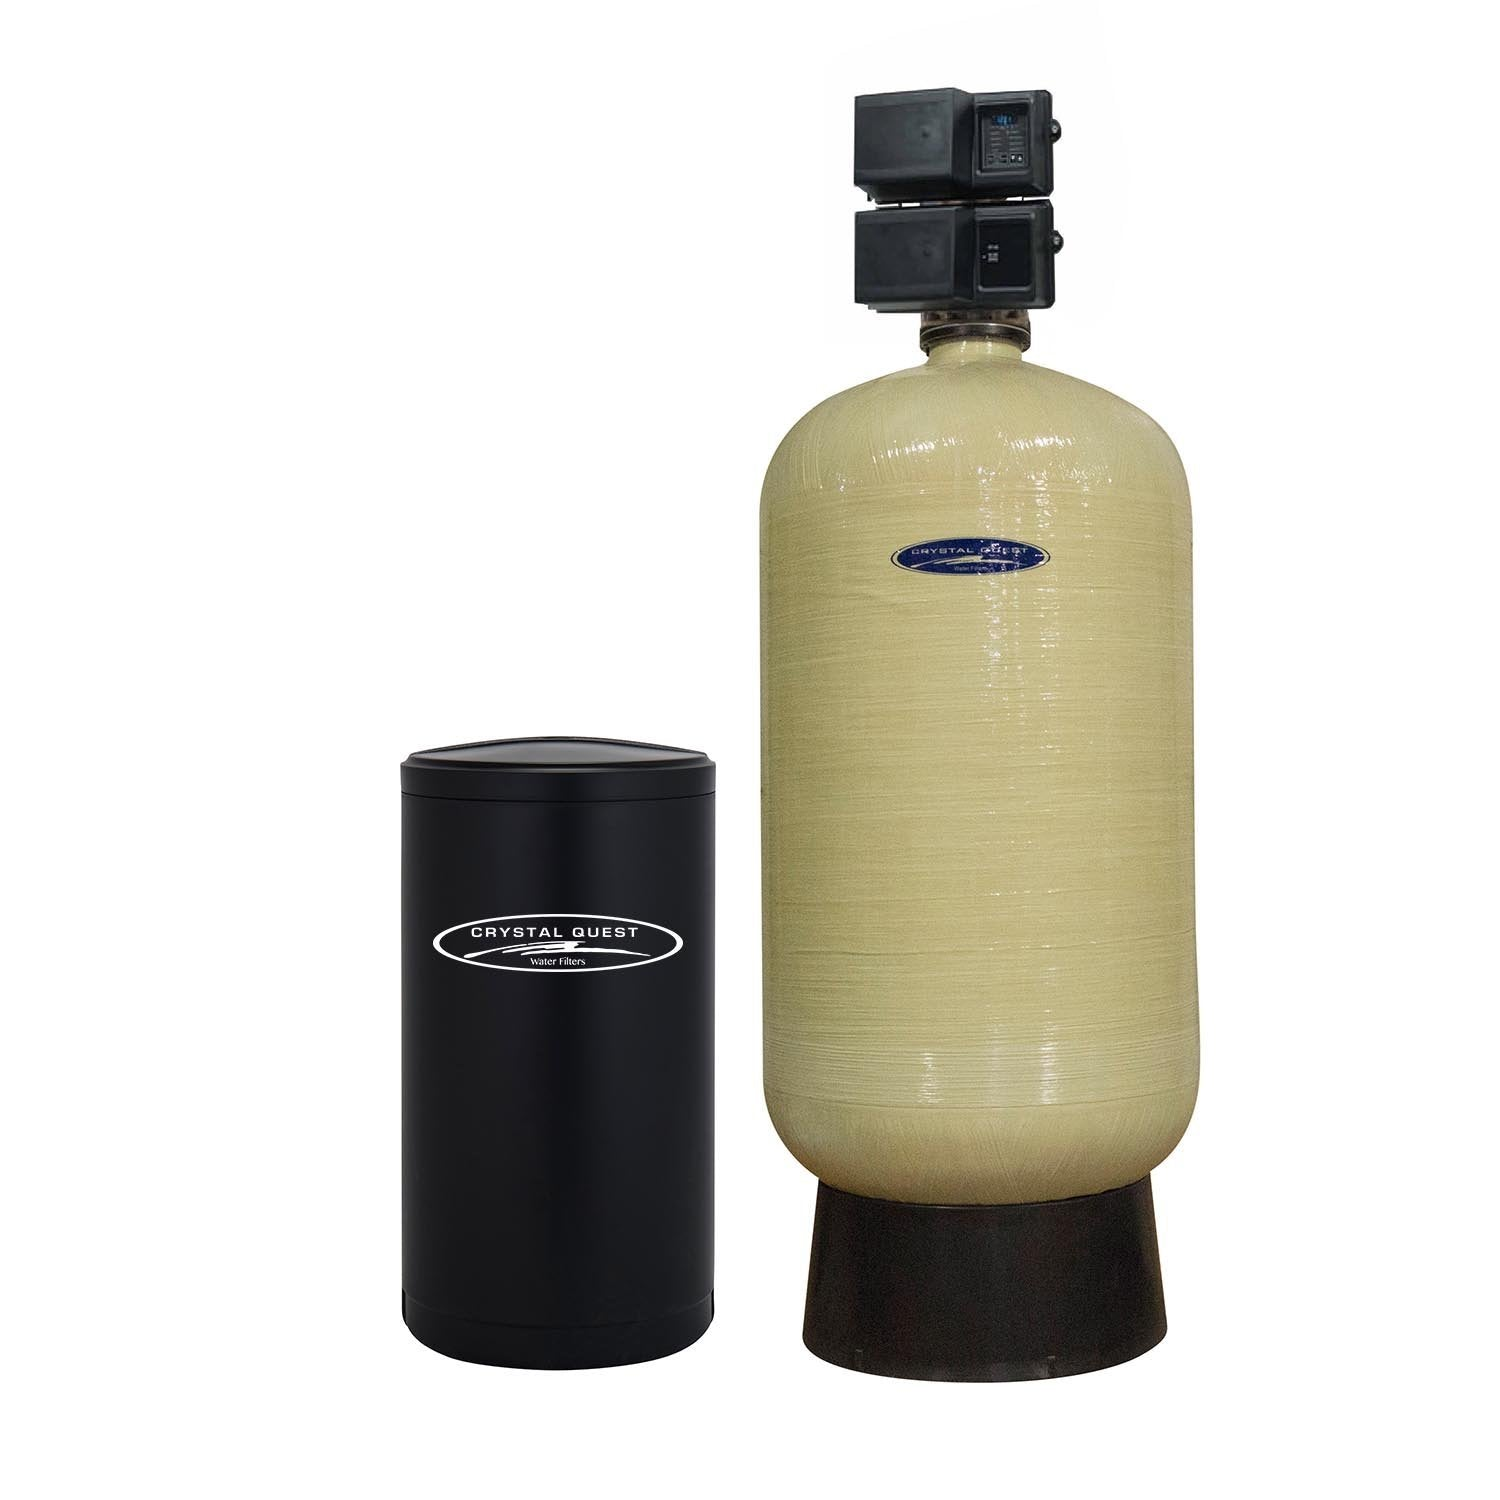 commercial water softener system 600000 grains single 20 cuft - Commercial Water Softener